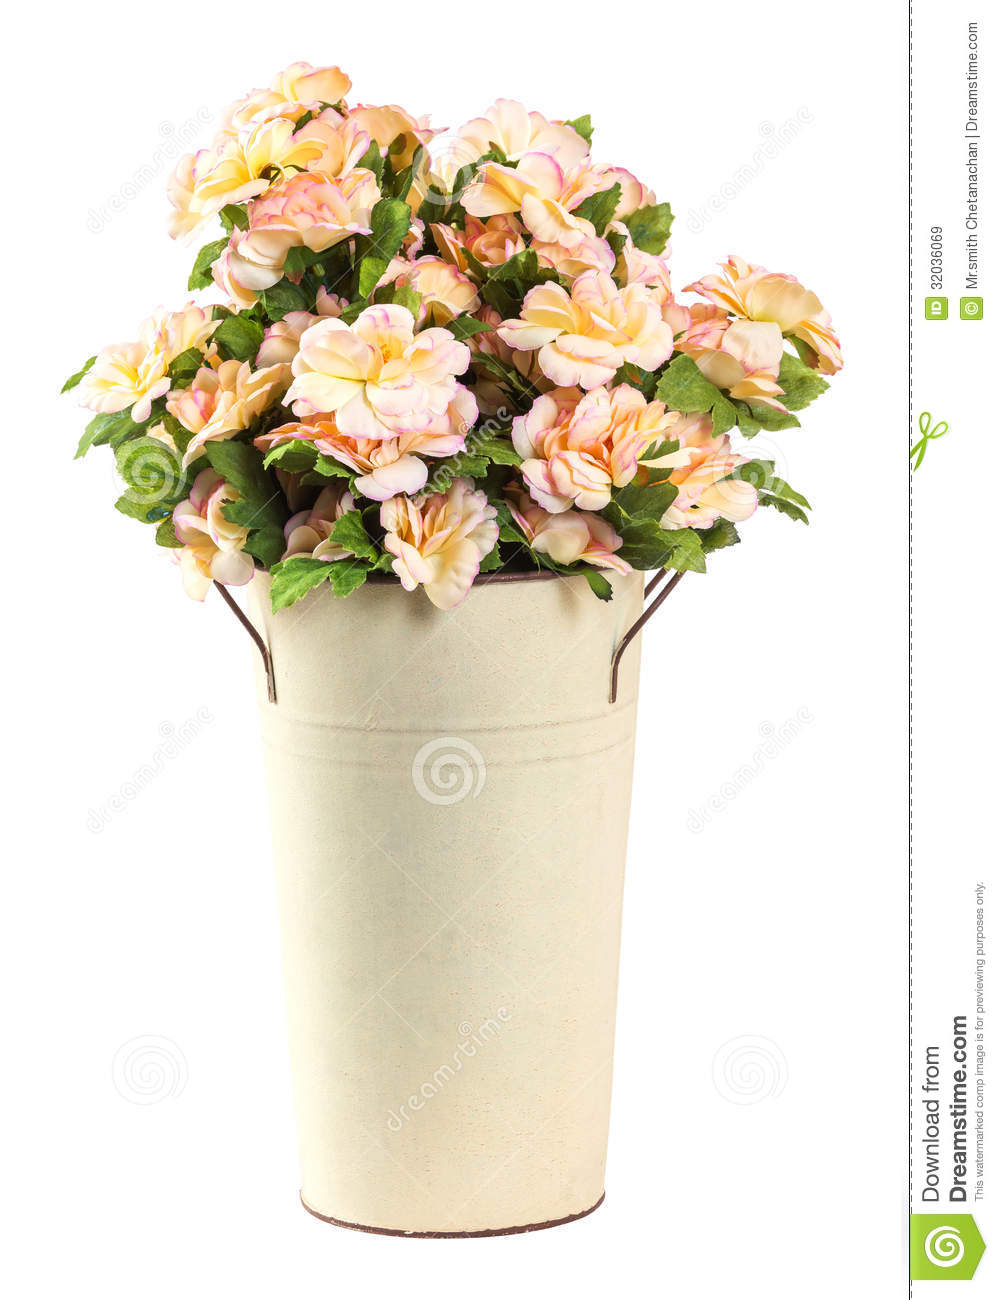 Bouquet of jasmine flower stock image image of gift 32036069 bouquet of jasmine flower izmirmasajfo Image collections